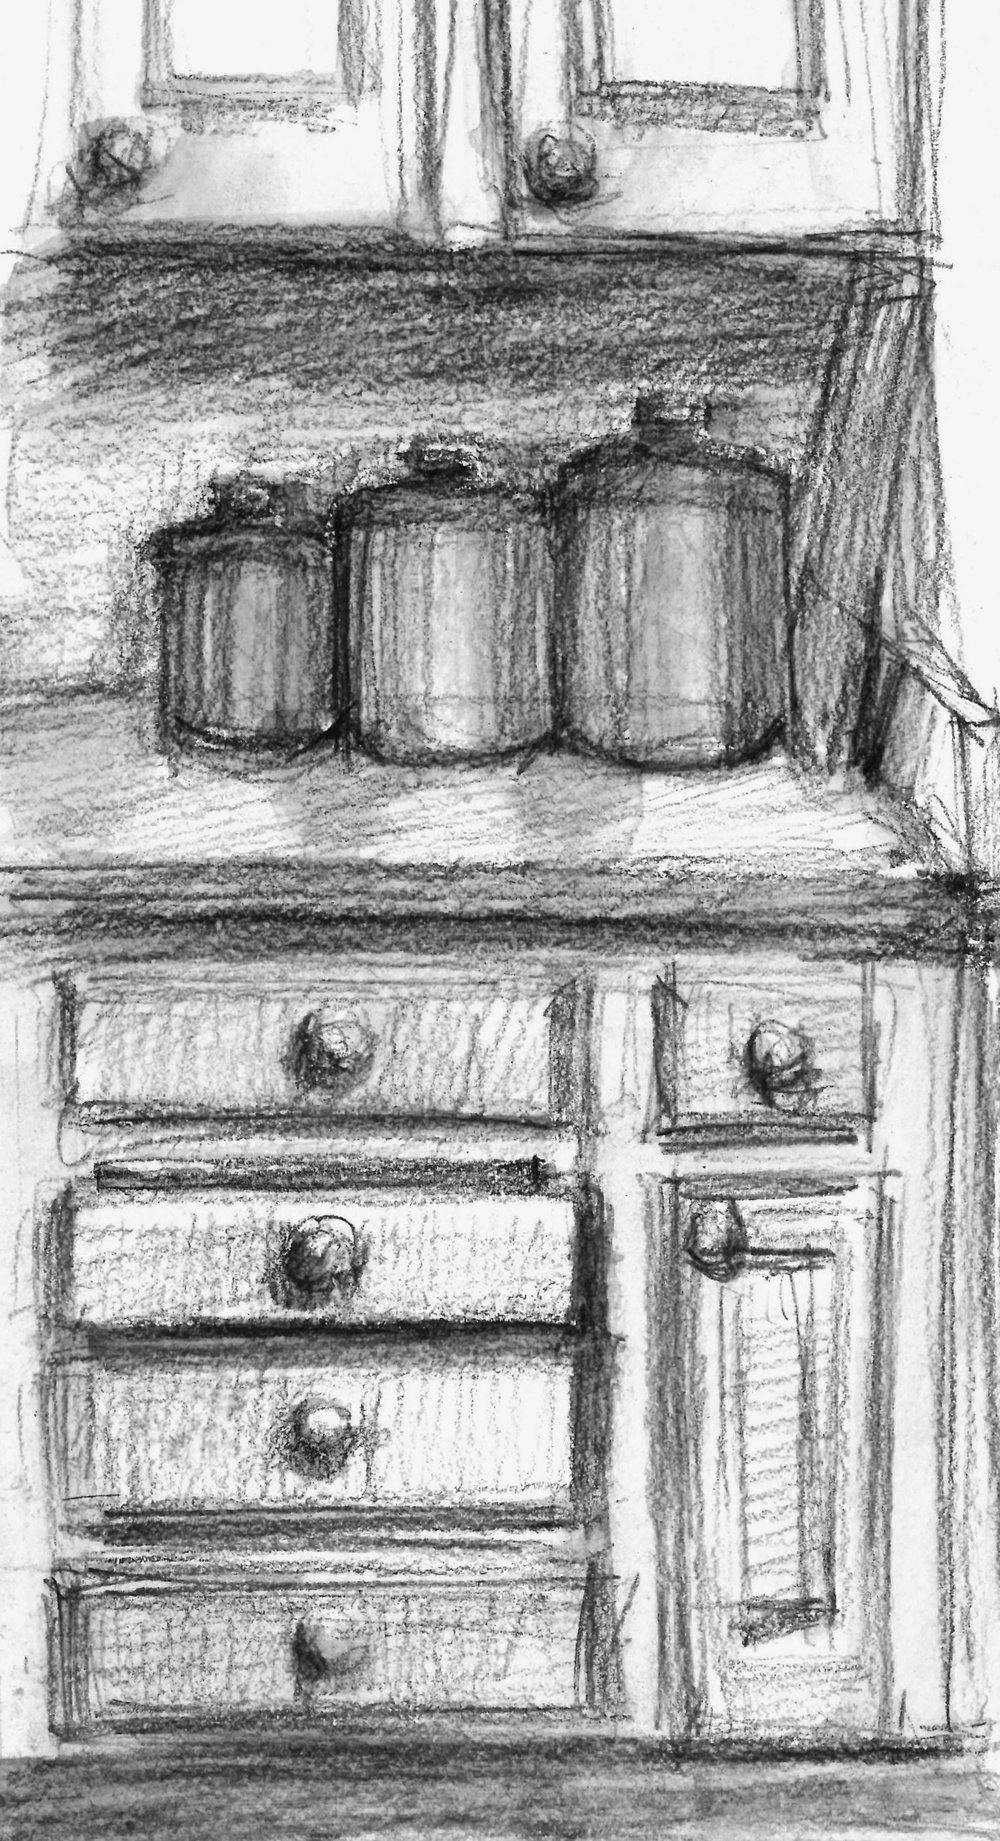 I don't like drawing straight edges so that is why I draw them. Plus that one drawer being a little open was oddly unsettling